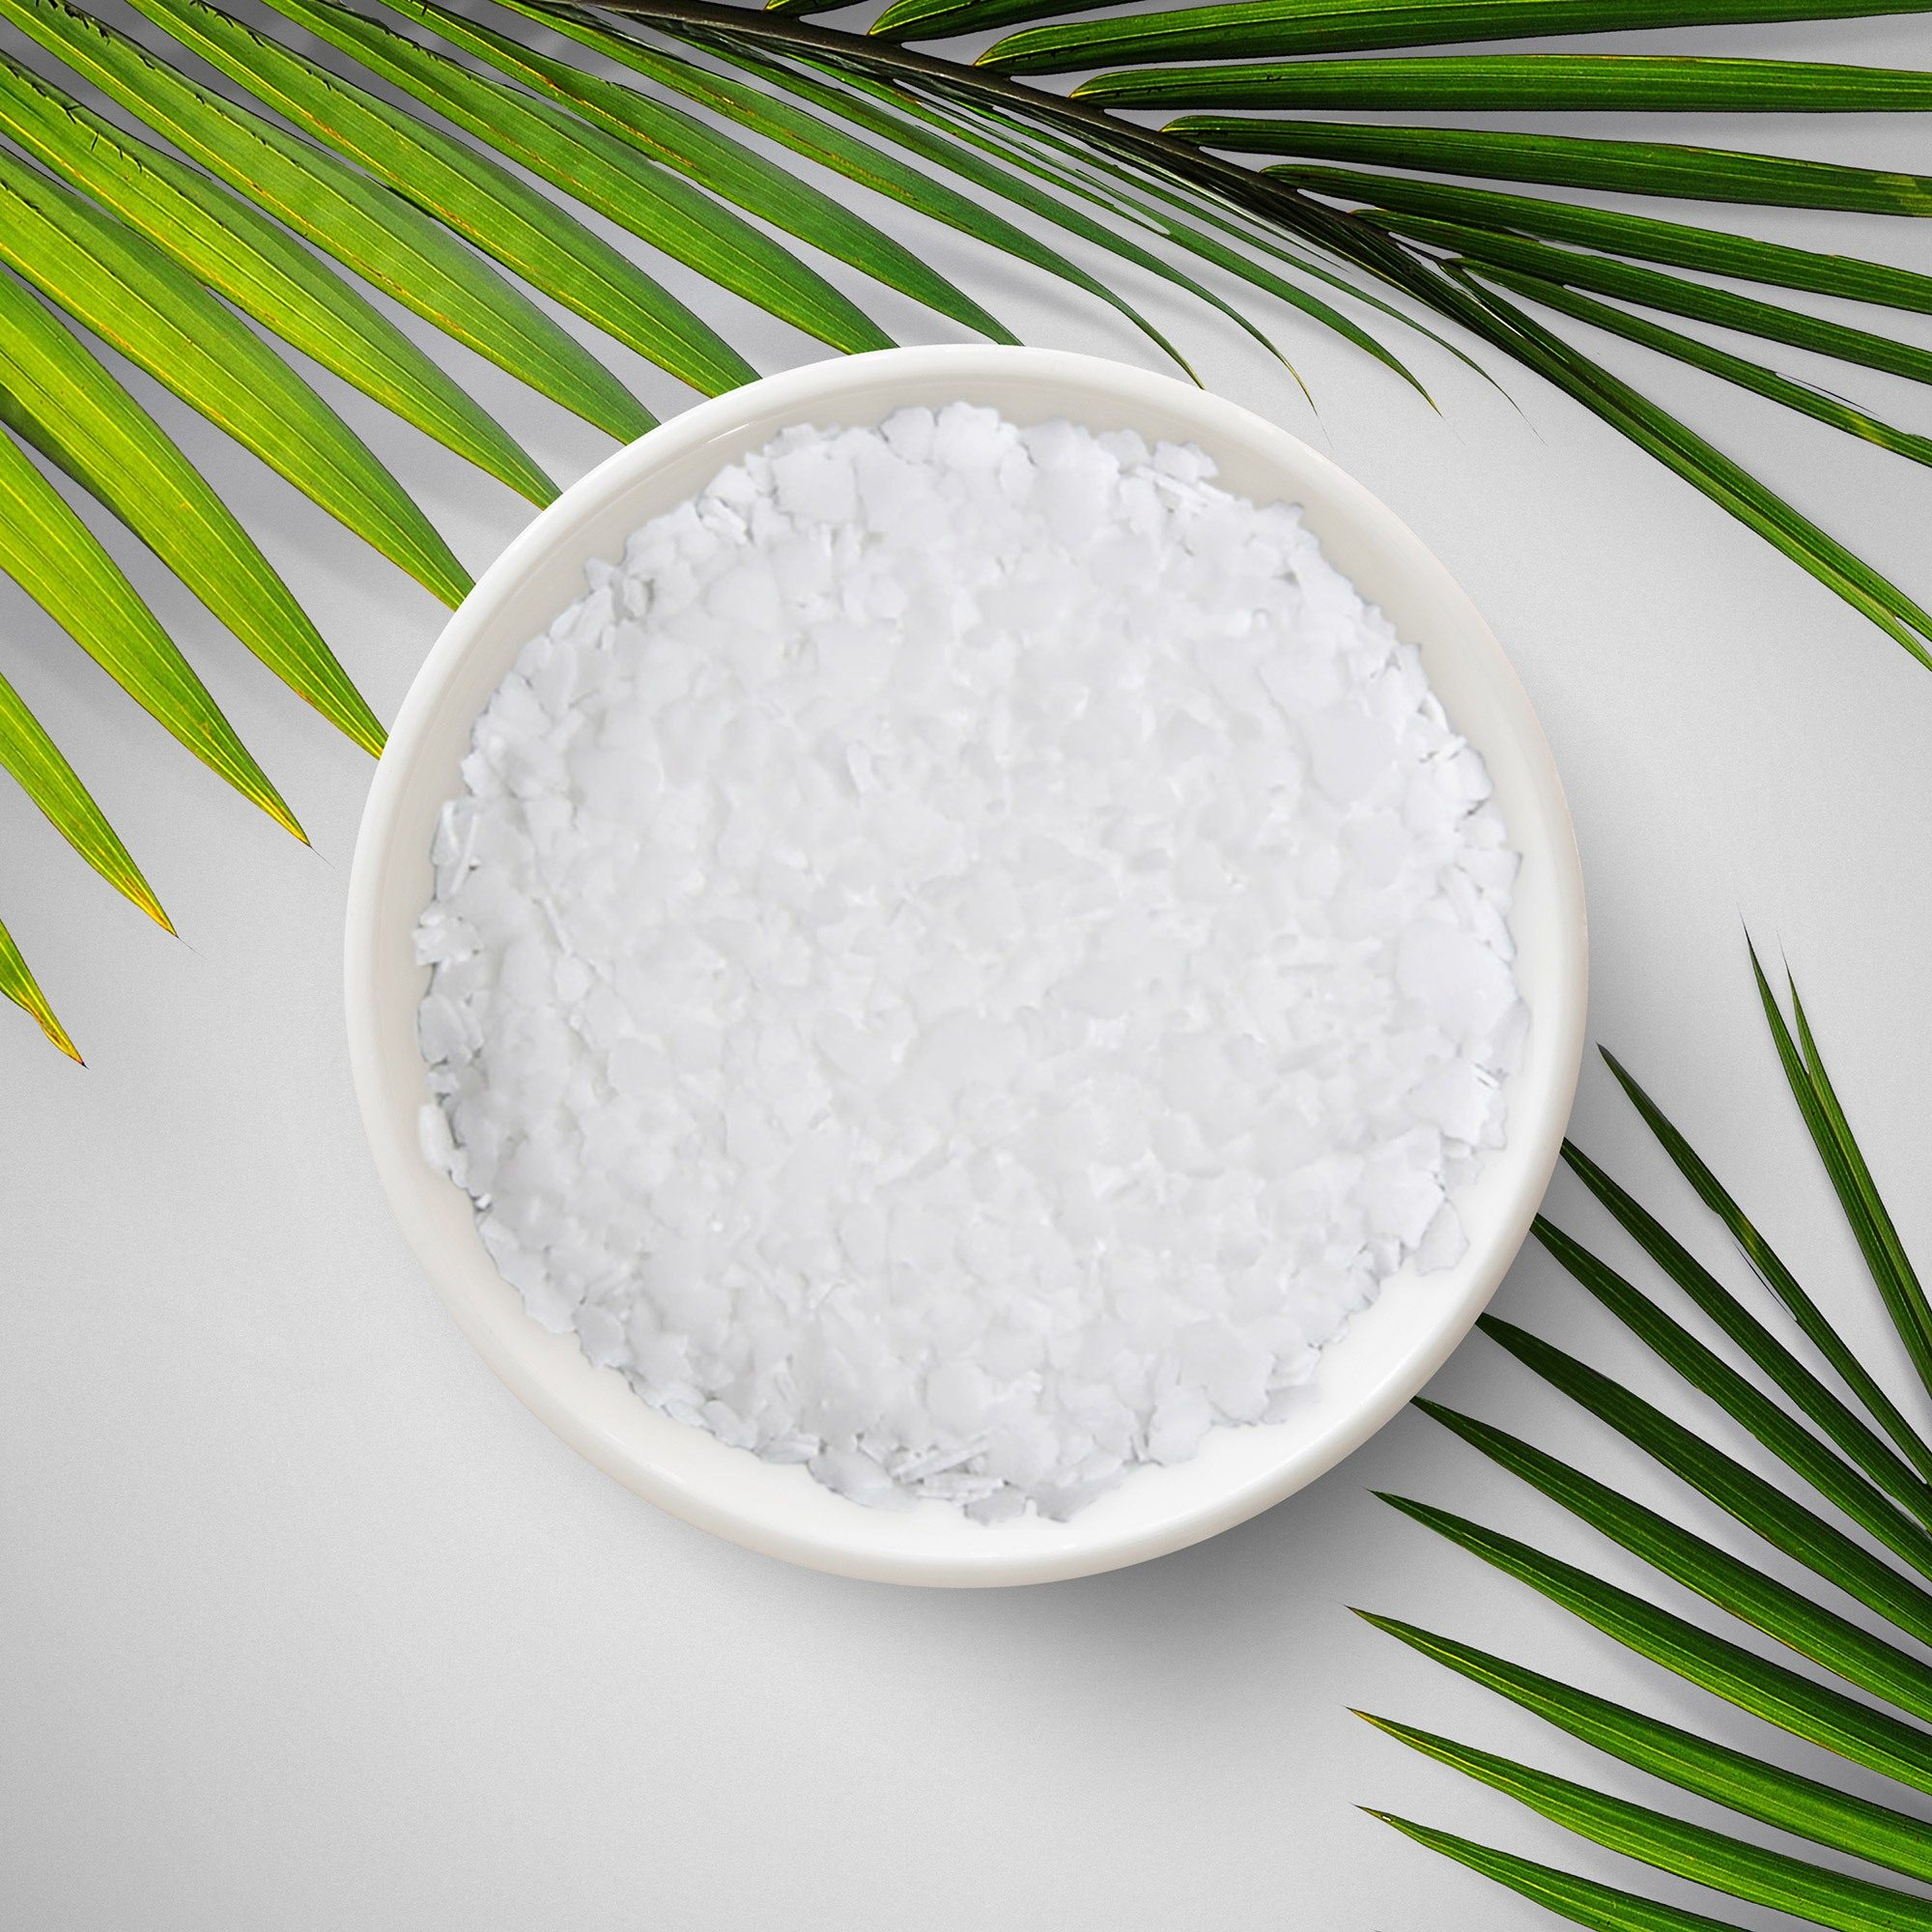 A vegetable-based flaky white substance for use in the cosmetic and pharmaceutical industry.